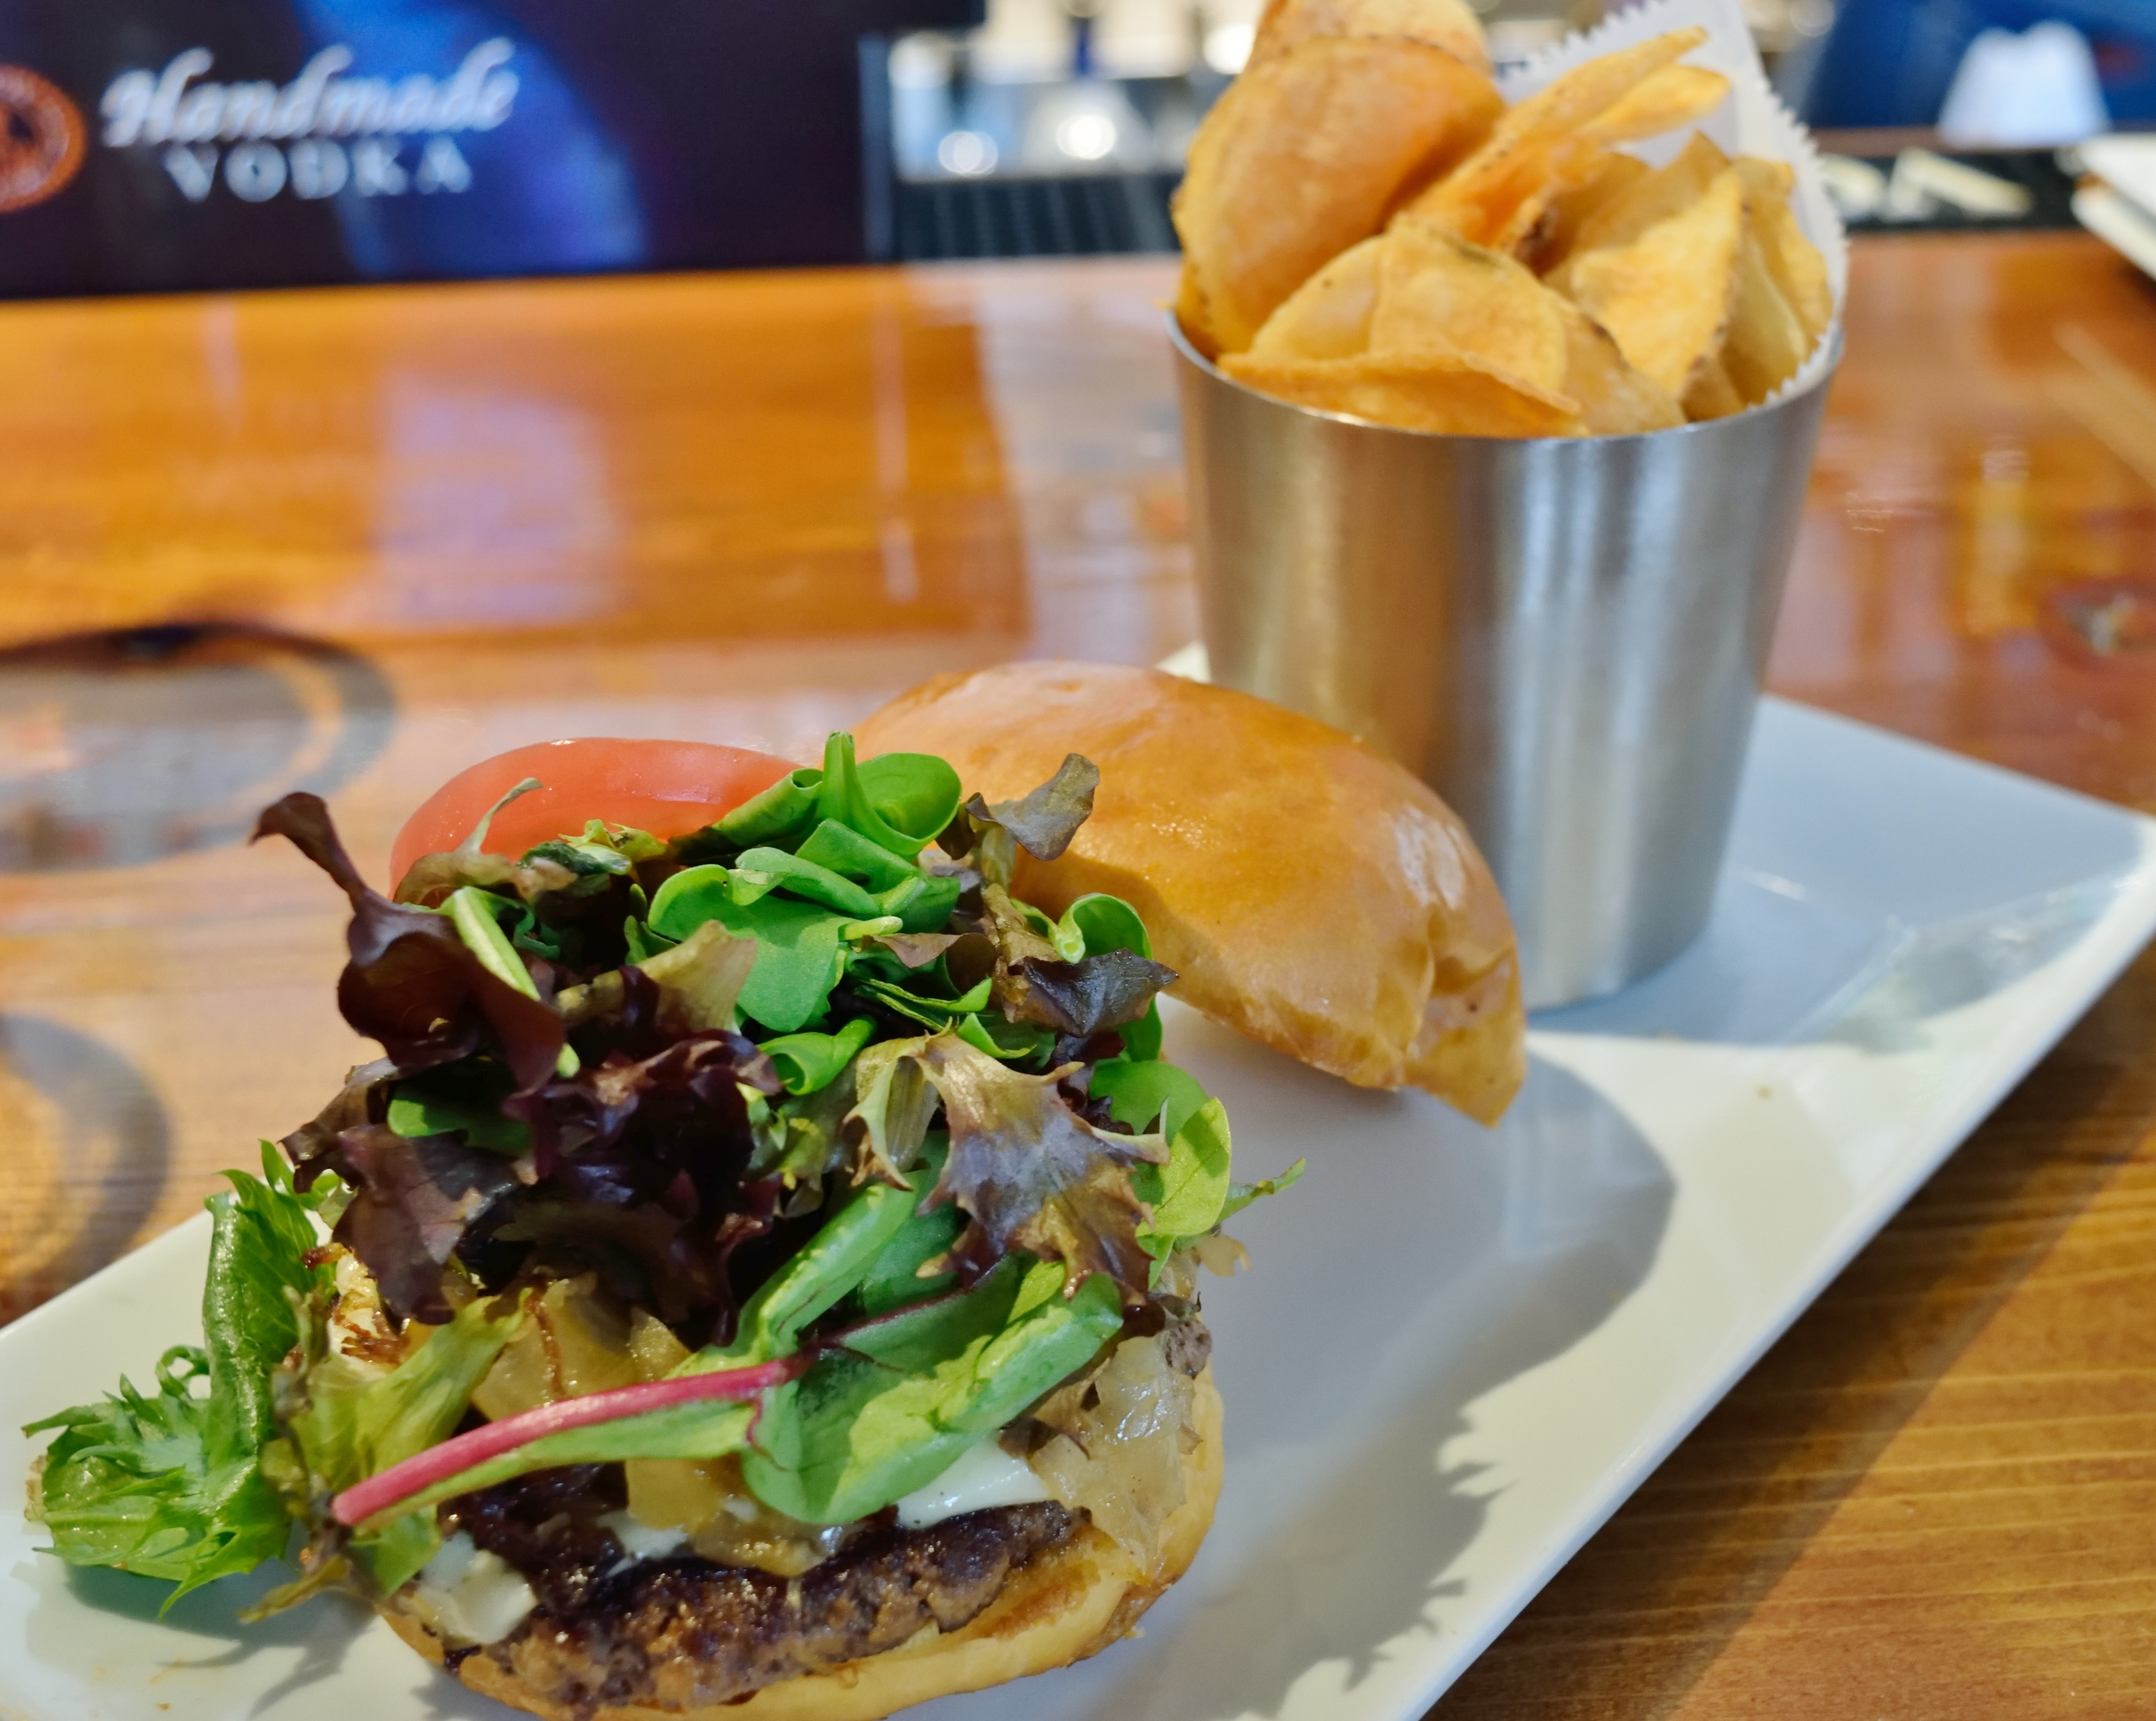 The Short Rib Gravy Burger with house chips!